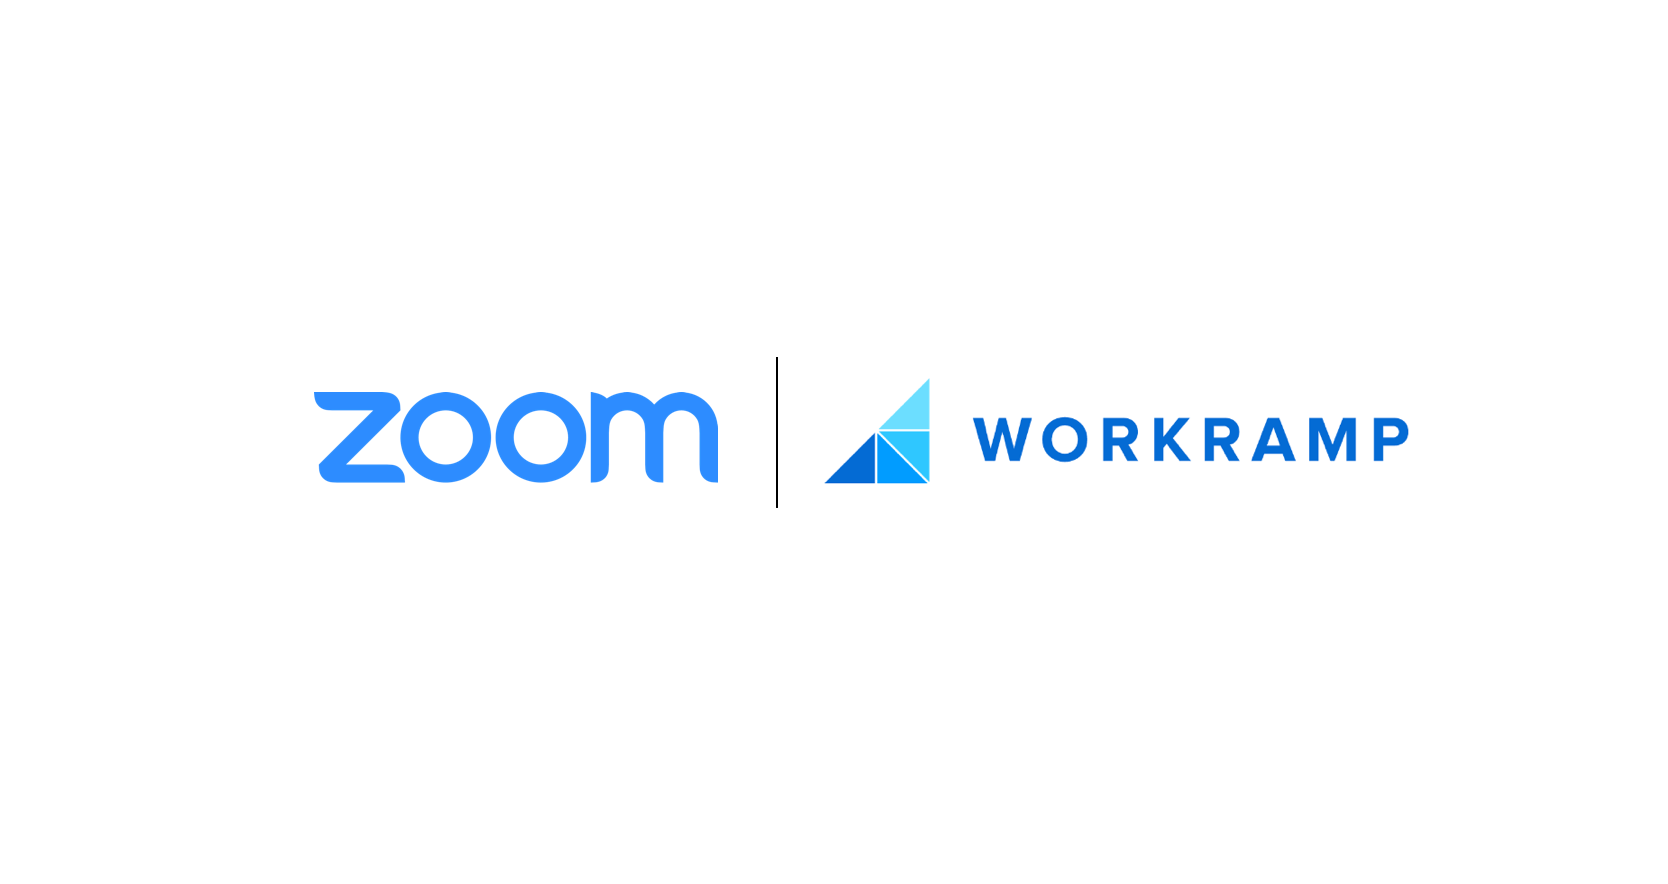 Www Check 24 Case Study Workramp Uses Zoom Api To Power Their Training